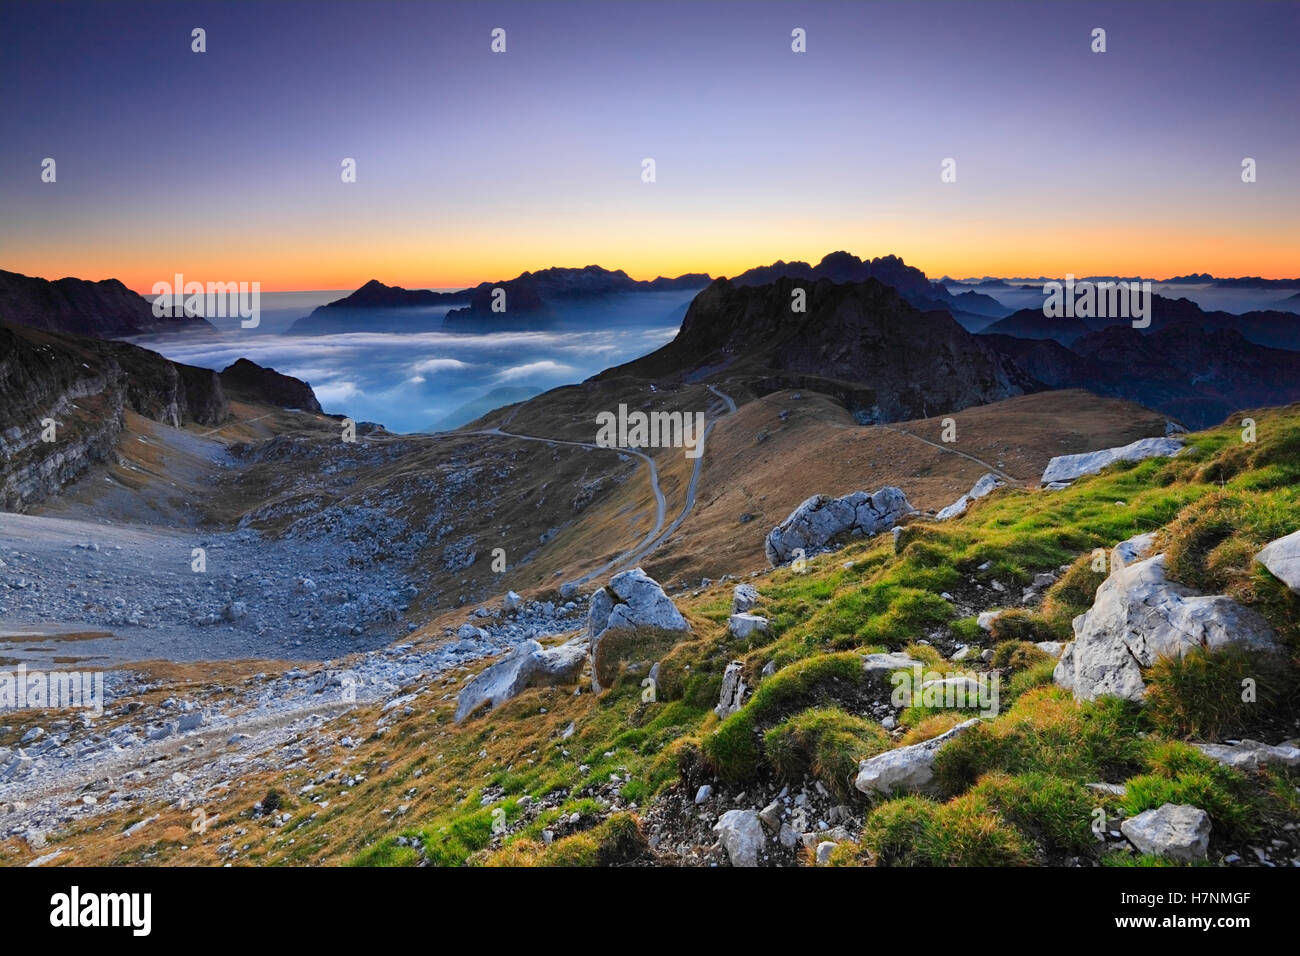 Mountains sunset landscape. Julian alps in Europe. Slovenia and Italy in a distance. Stock Photo